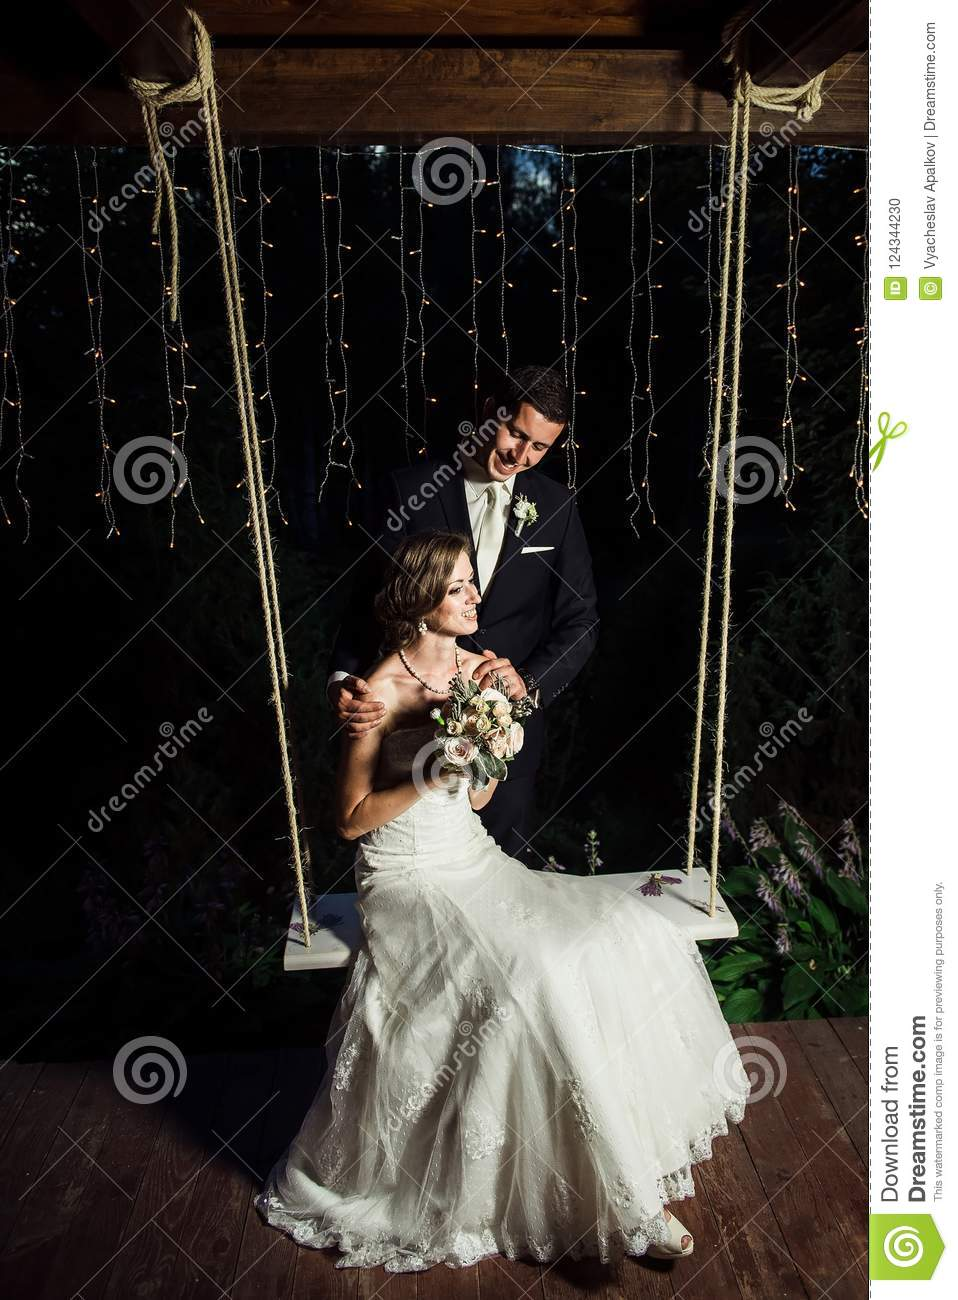 Wedding picture of a happy couple